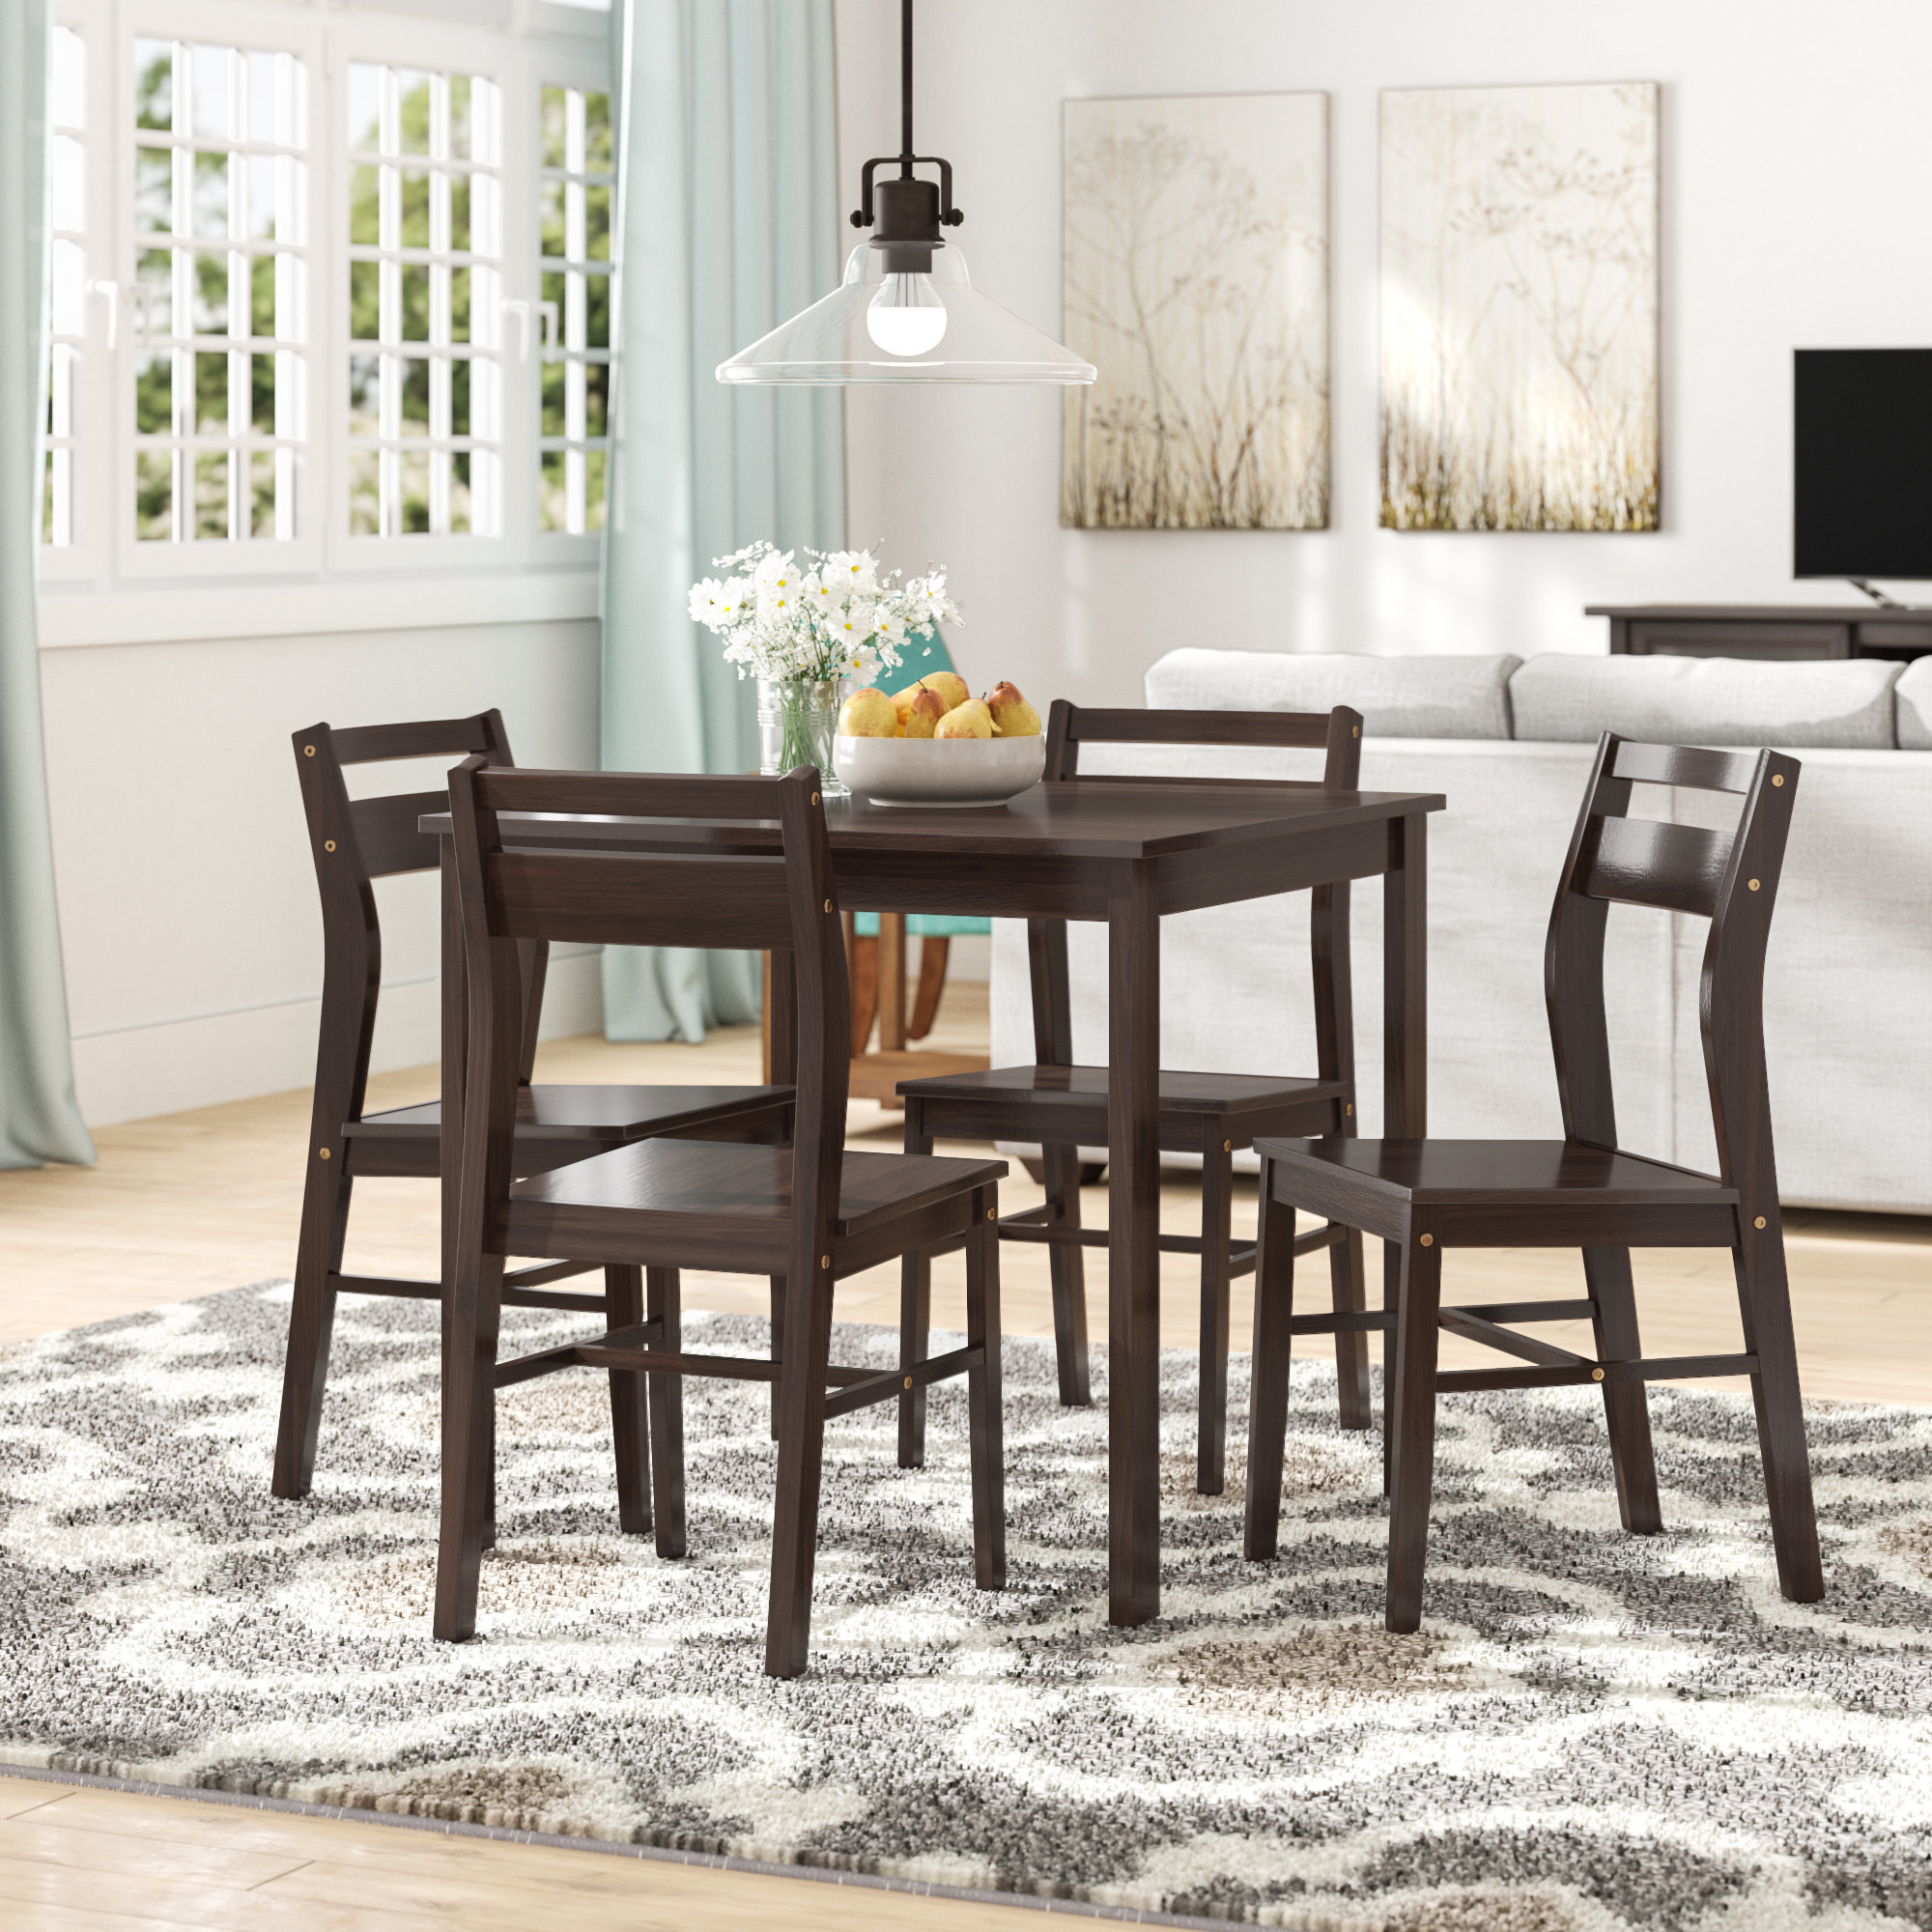 Hersom 5 Piece Dining Set Inside 2017 Jarrod 5 Piece Dining Sets (Photo 5 of 20)